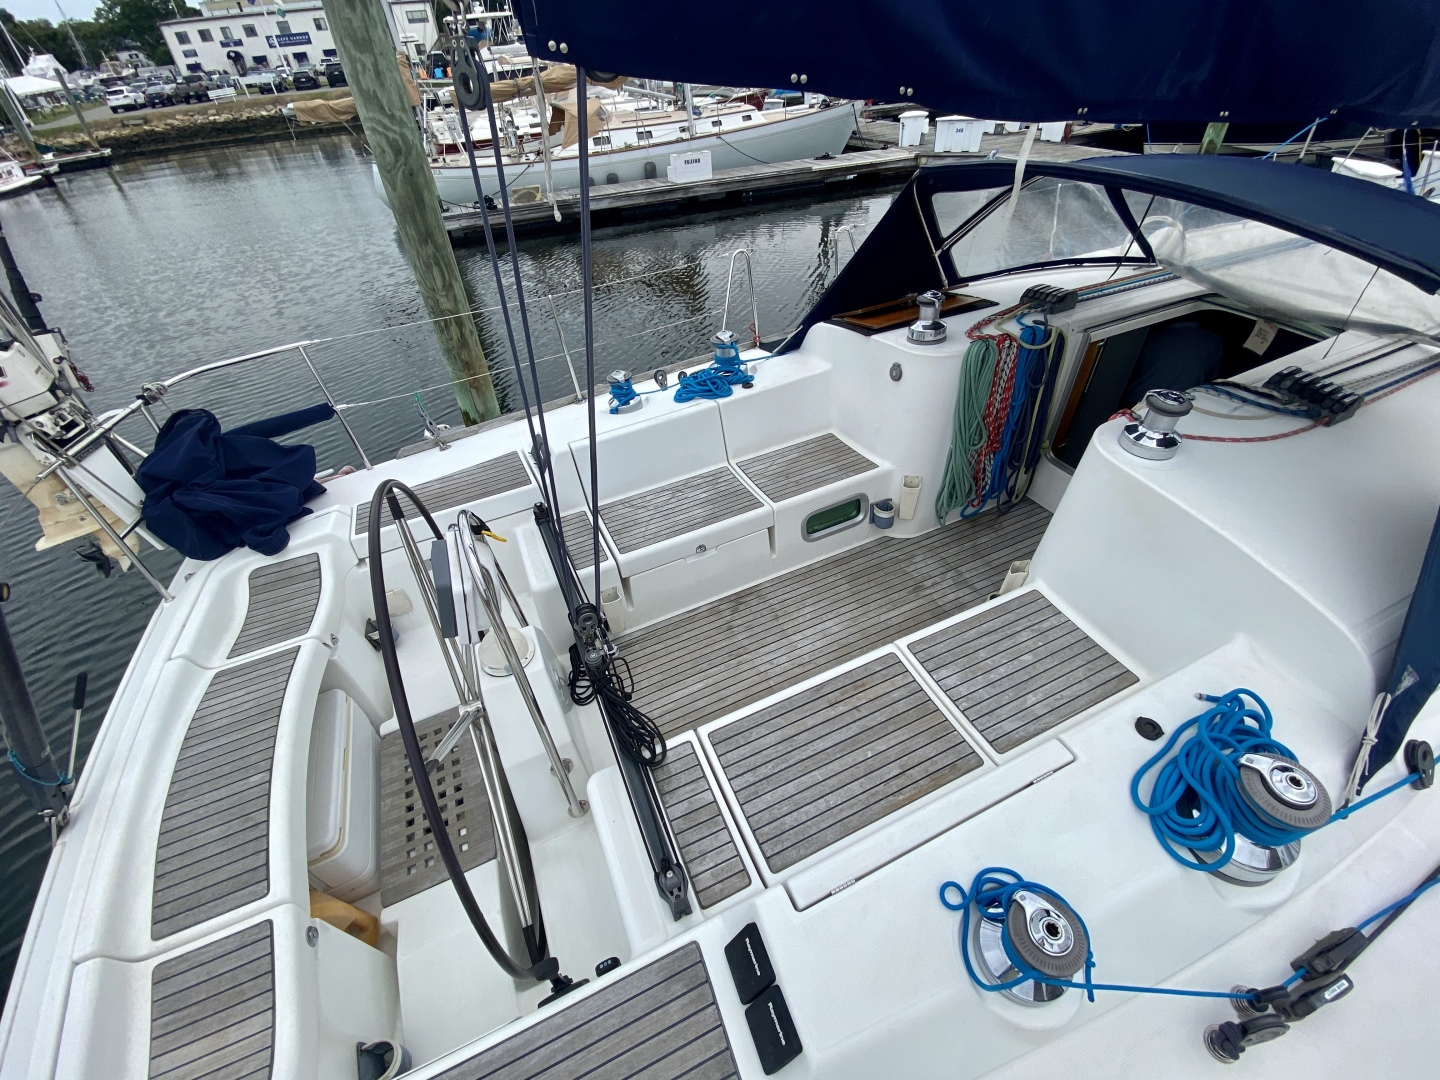 Beneteau-First 47.7 2004 -Portsmouth-Rhode Island-United States-Cockpit-1551513 | Thumbnail